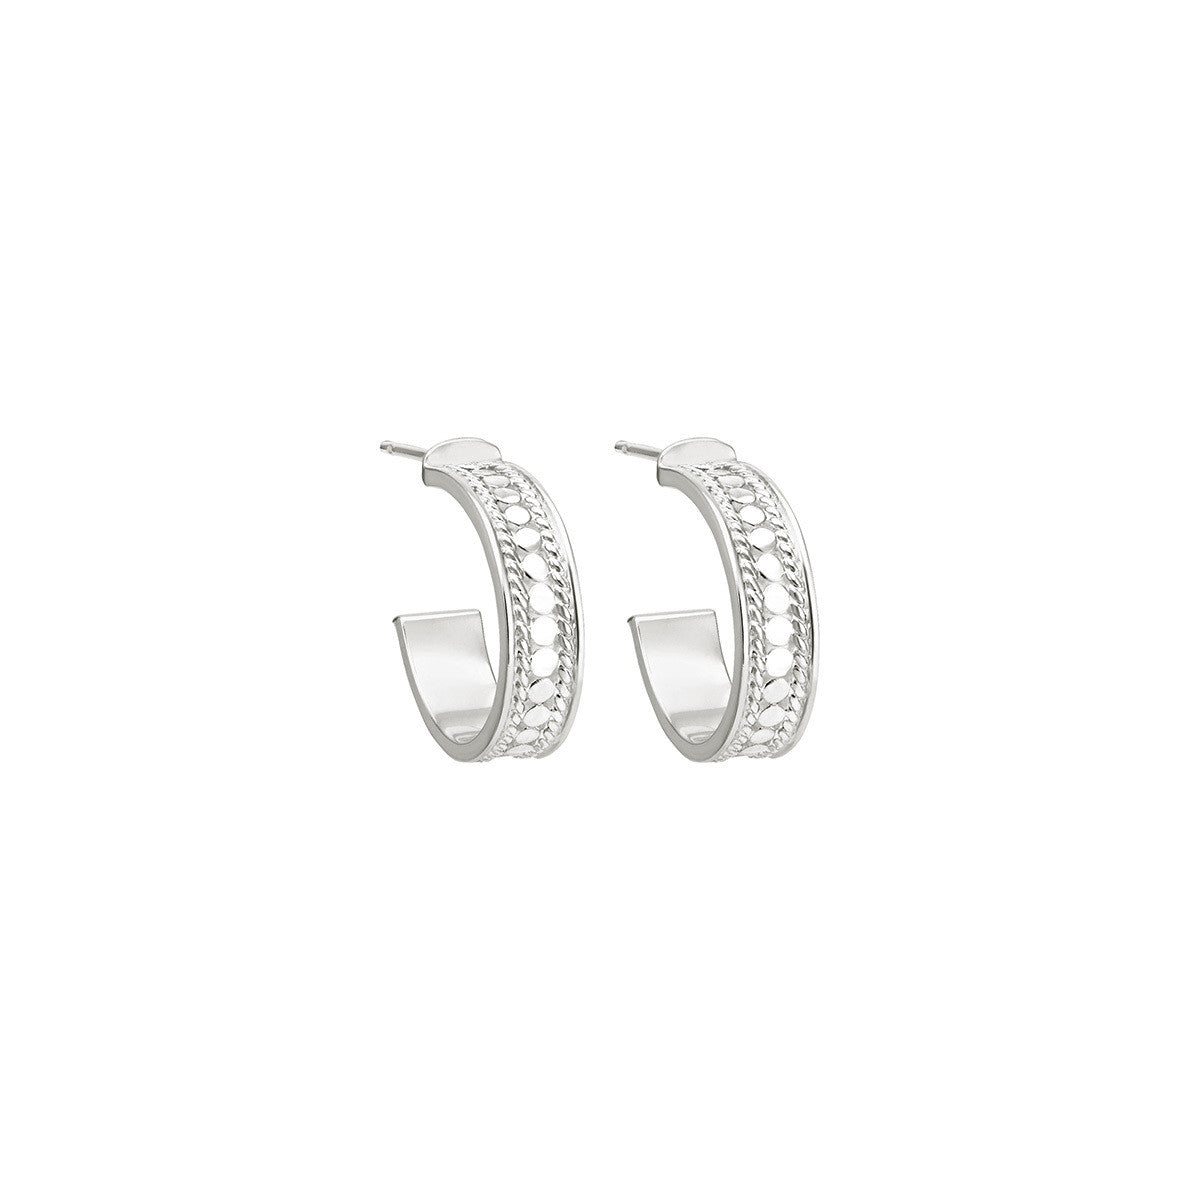 Anna Beck Hoop Post Earrings - Silver